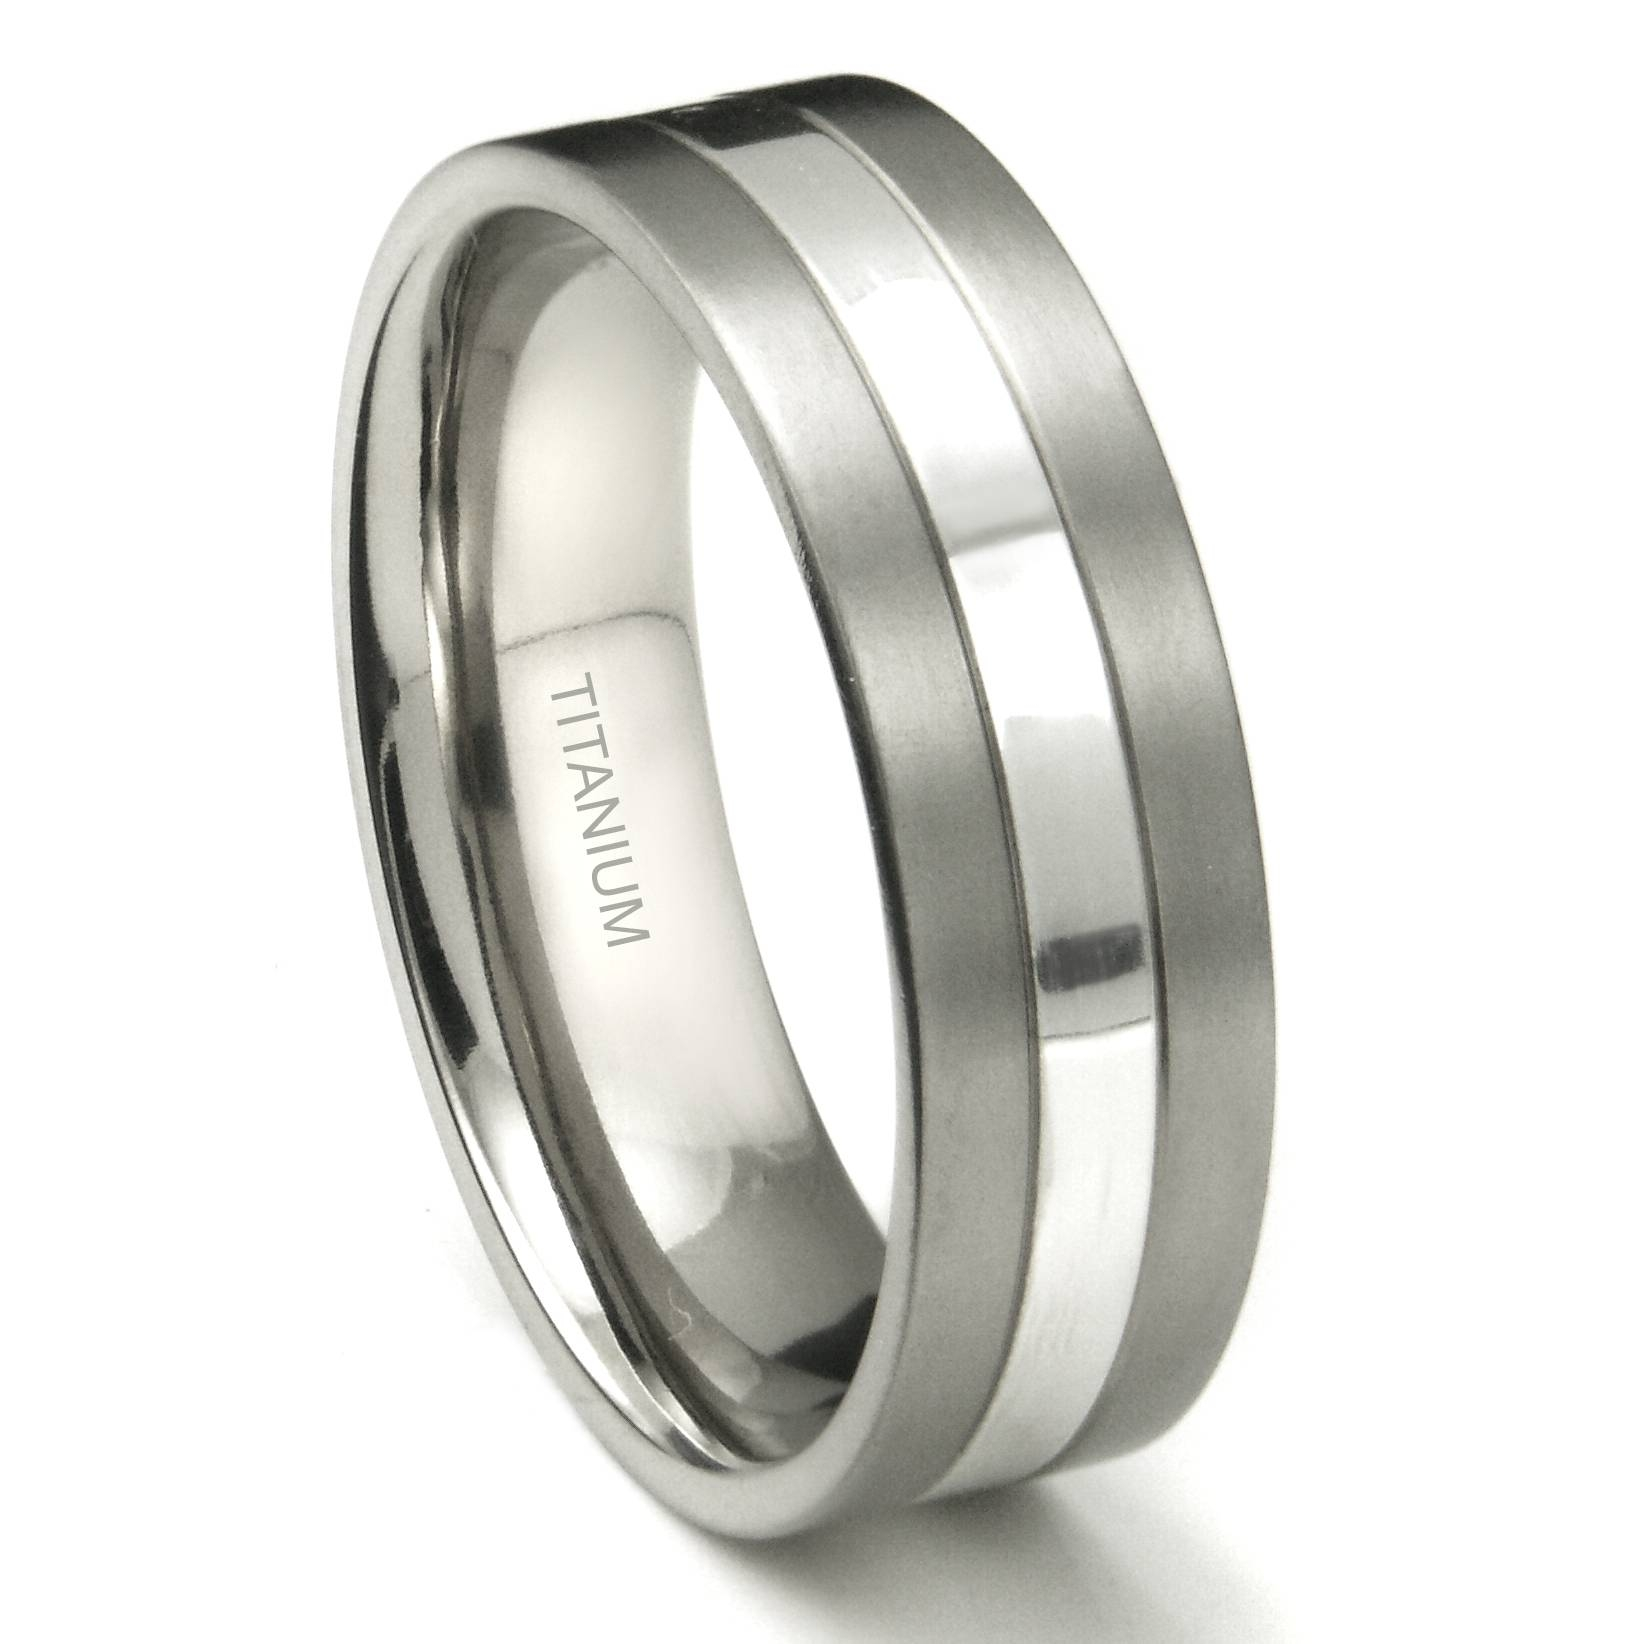 Titanium 7Mm Two Tone Wedding Ring With Black And Silver Mens Wedding Rings (View 13 of 15)